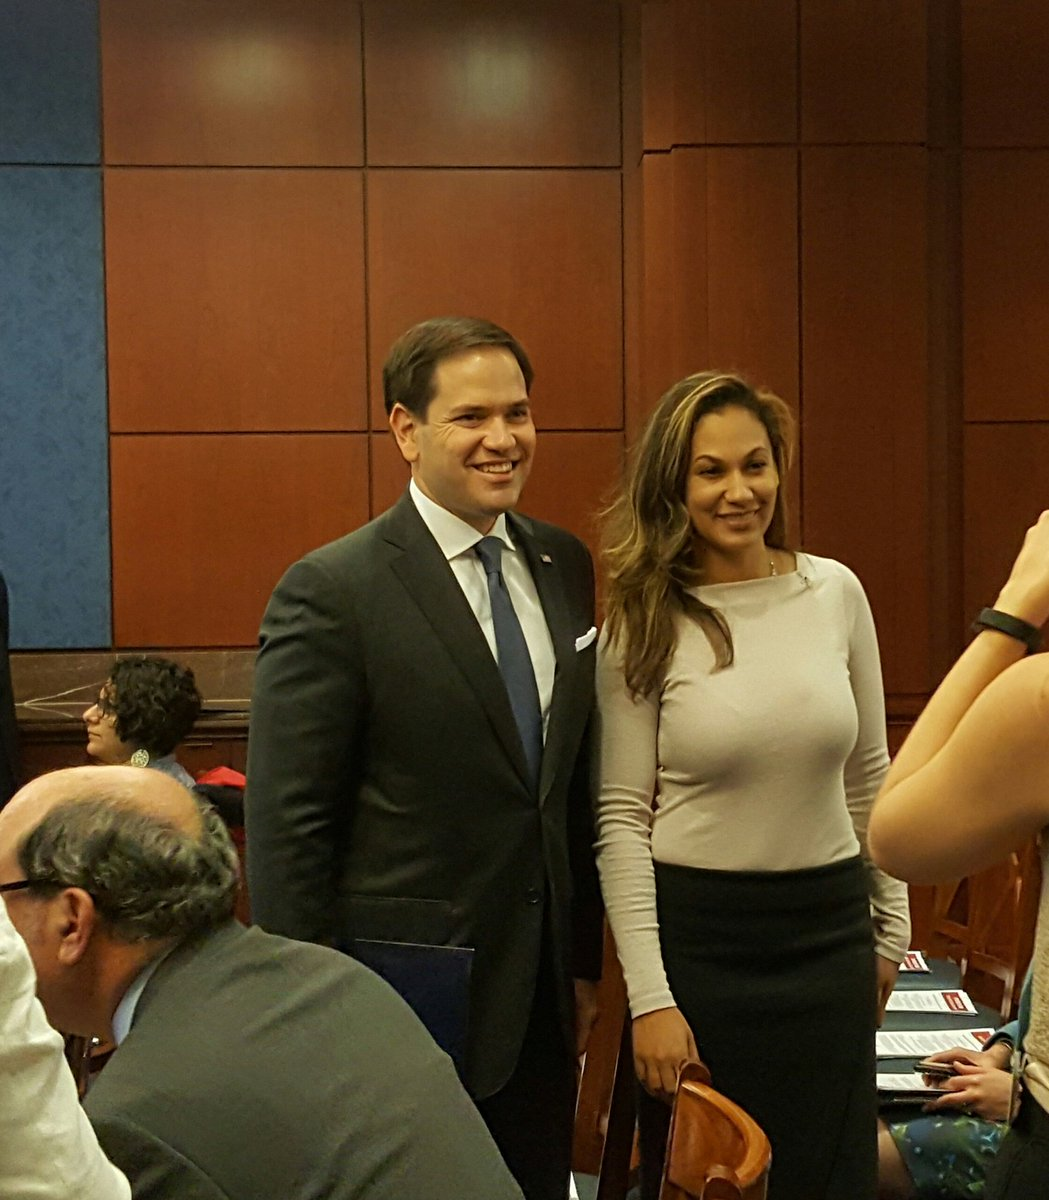 Our ED, @rizermonique with @marcorubio as we kick off our event about Children's Savings Accounts. #OurOppNation https://t.co/06yWdgCH5E